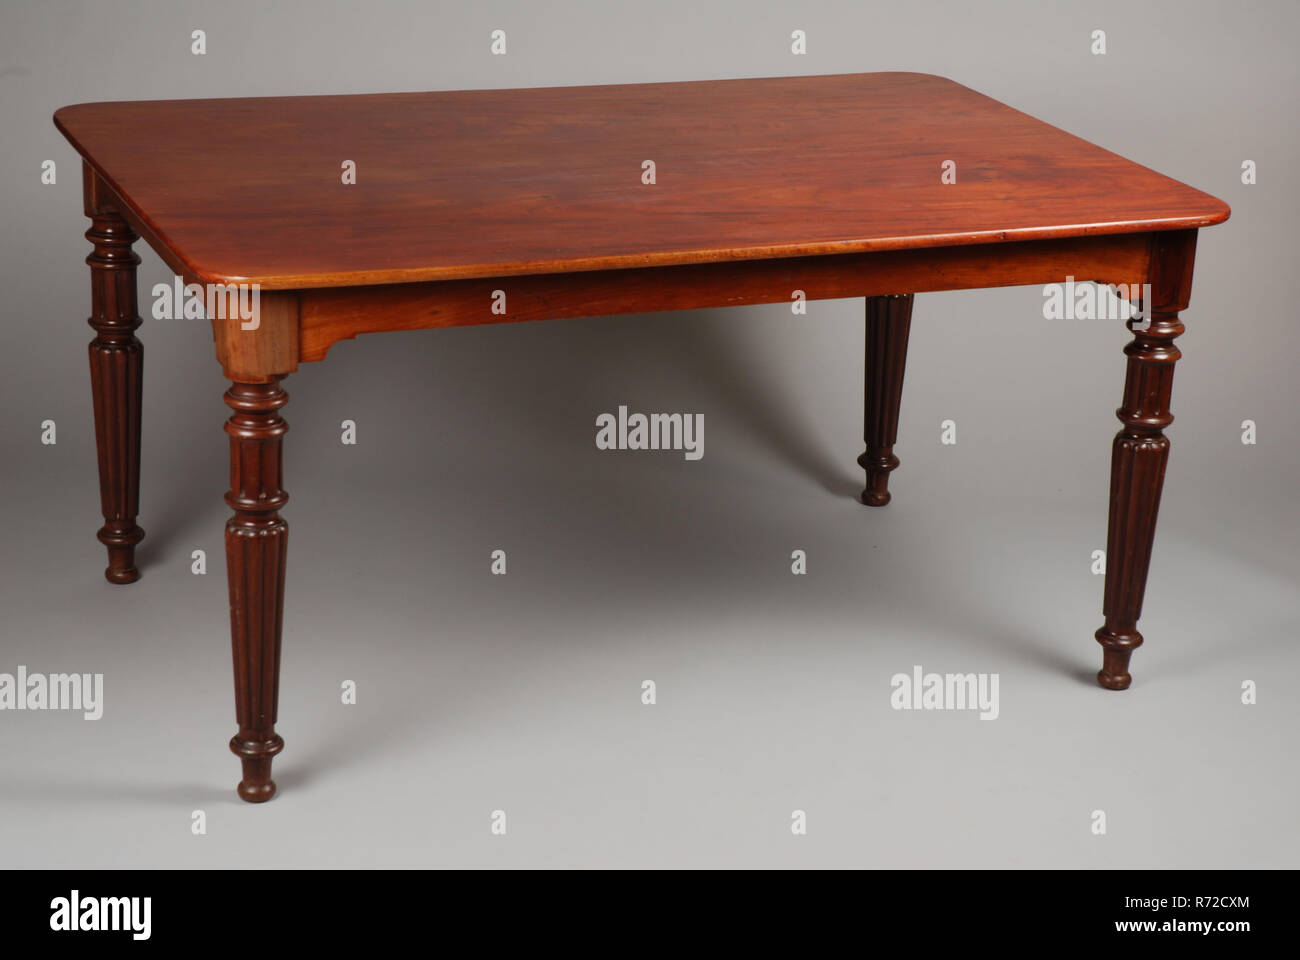 Rectangular mahogany table table furniture interior design mahogany wood rounded corners and four fluted tapered legs